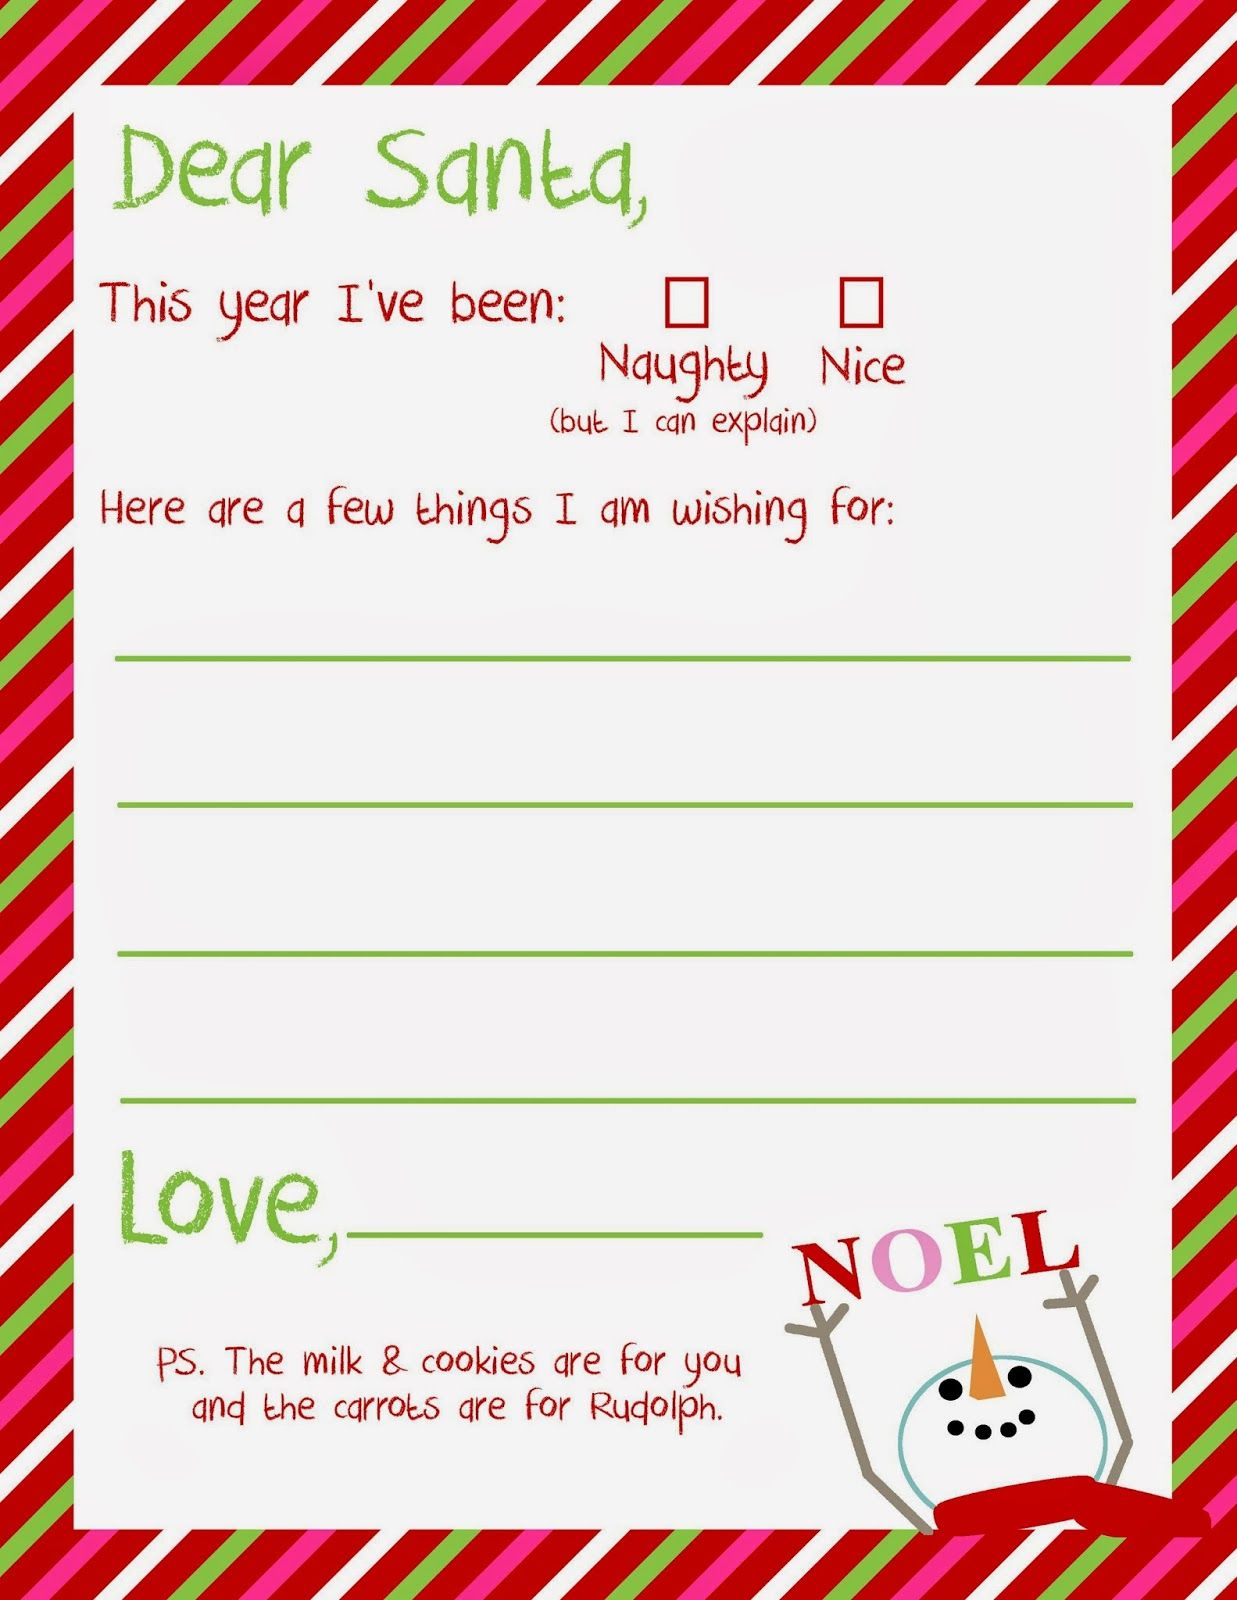 Free Printable Letter From Santa Template - Dear Santa Letter Printable